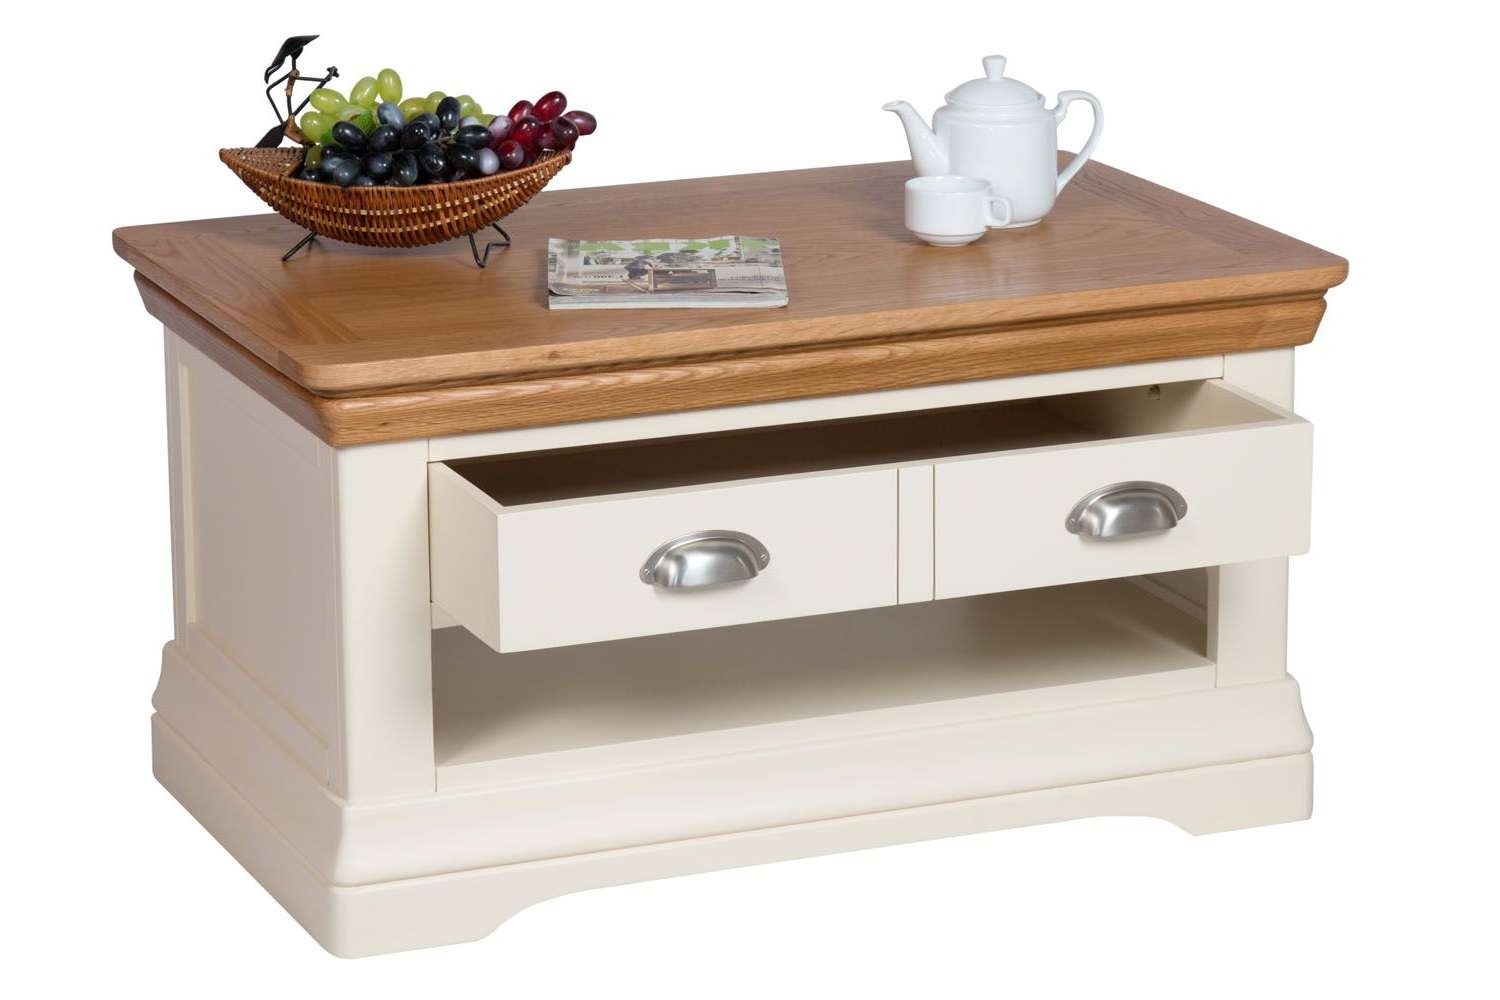 Farmhouse Cream Painted Oak Coffee Table With Drawers Intended For Preferred Cream And Oak Coffee Tables (View 16 of 20)